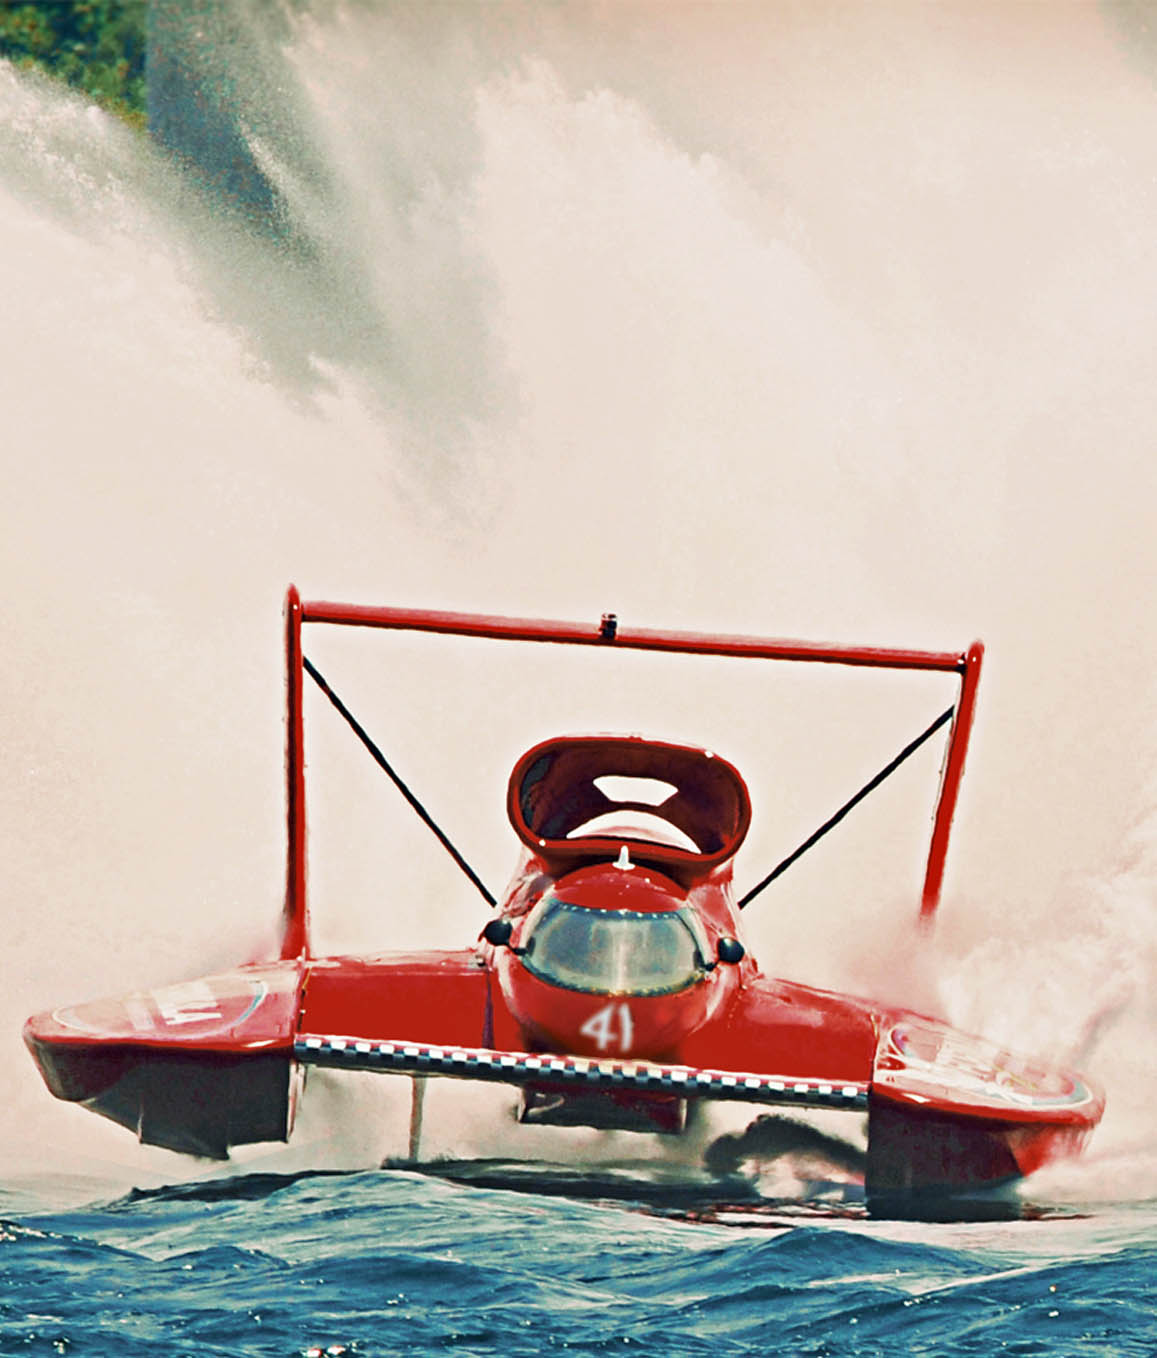 Tahoe Truckee Outdoor: Hydroplane racing returns to Folsom Lake this